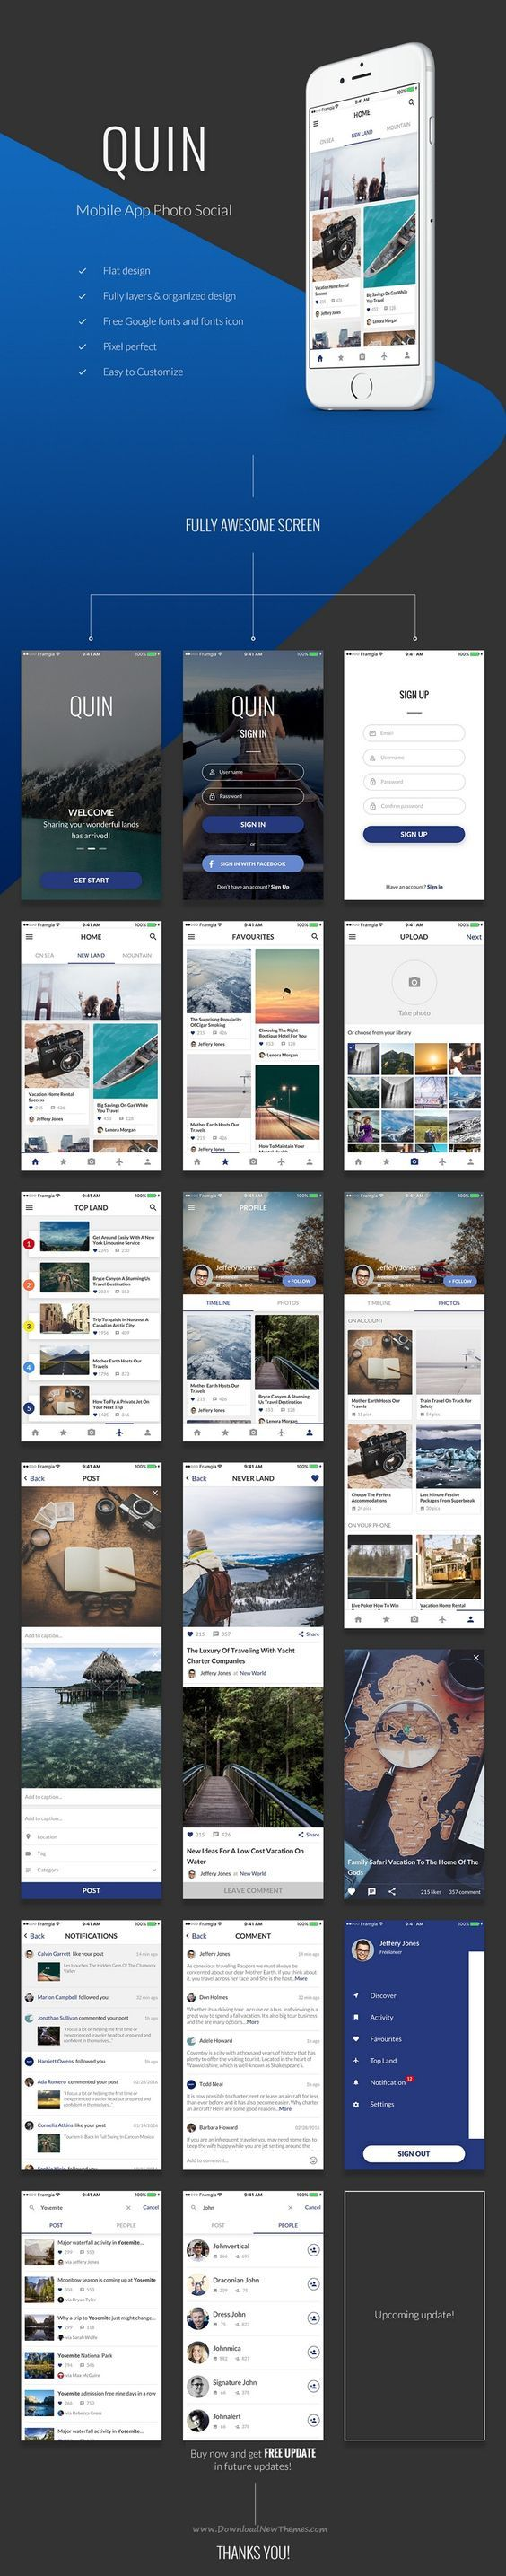 Quin is mobile #app to share your best photos to social friends. #ui #sketchtemplate Download Now➝ http://themeforest.net/item/quin-mobile-app-photo-social/15787297?ref=Datasata: